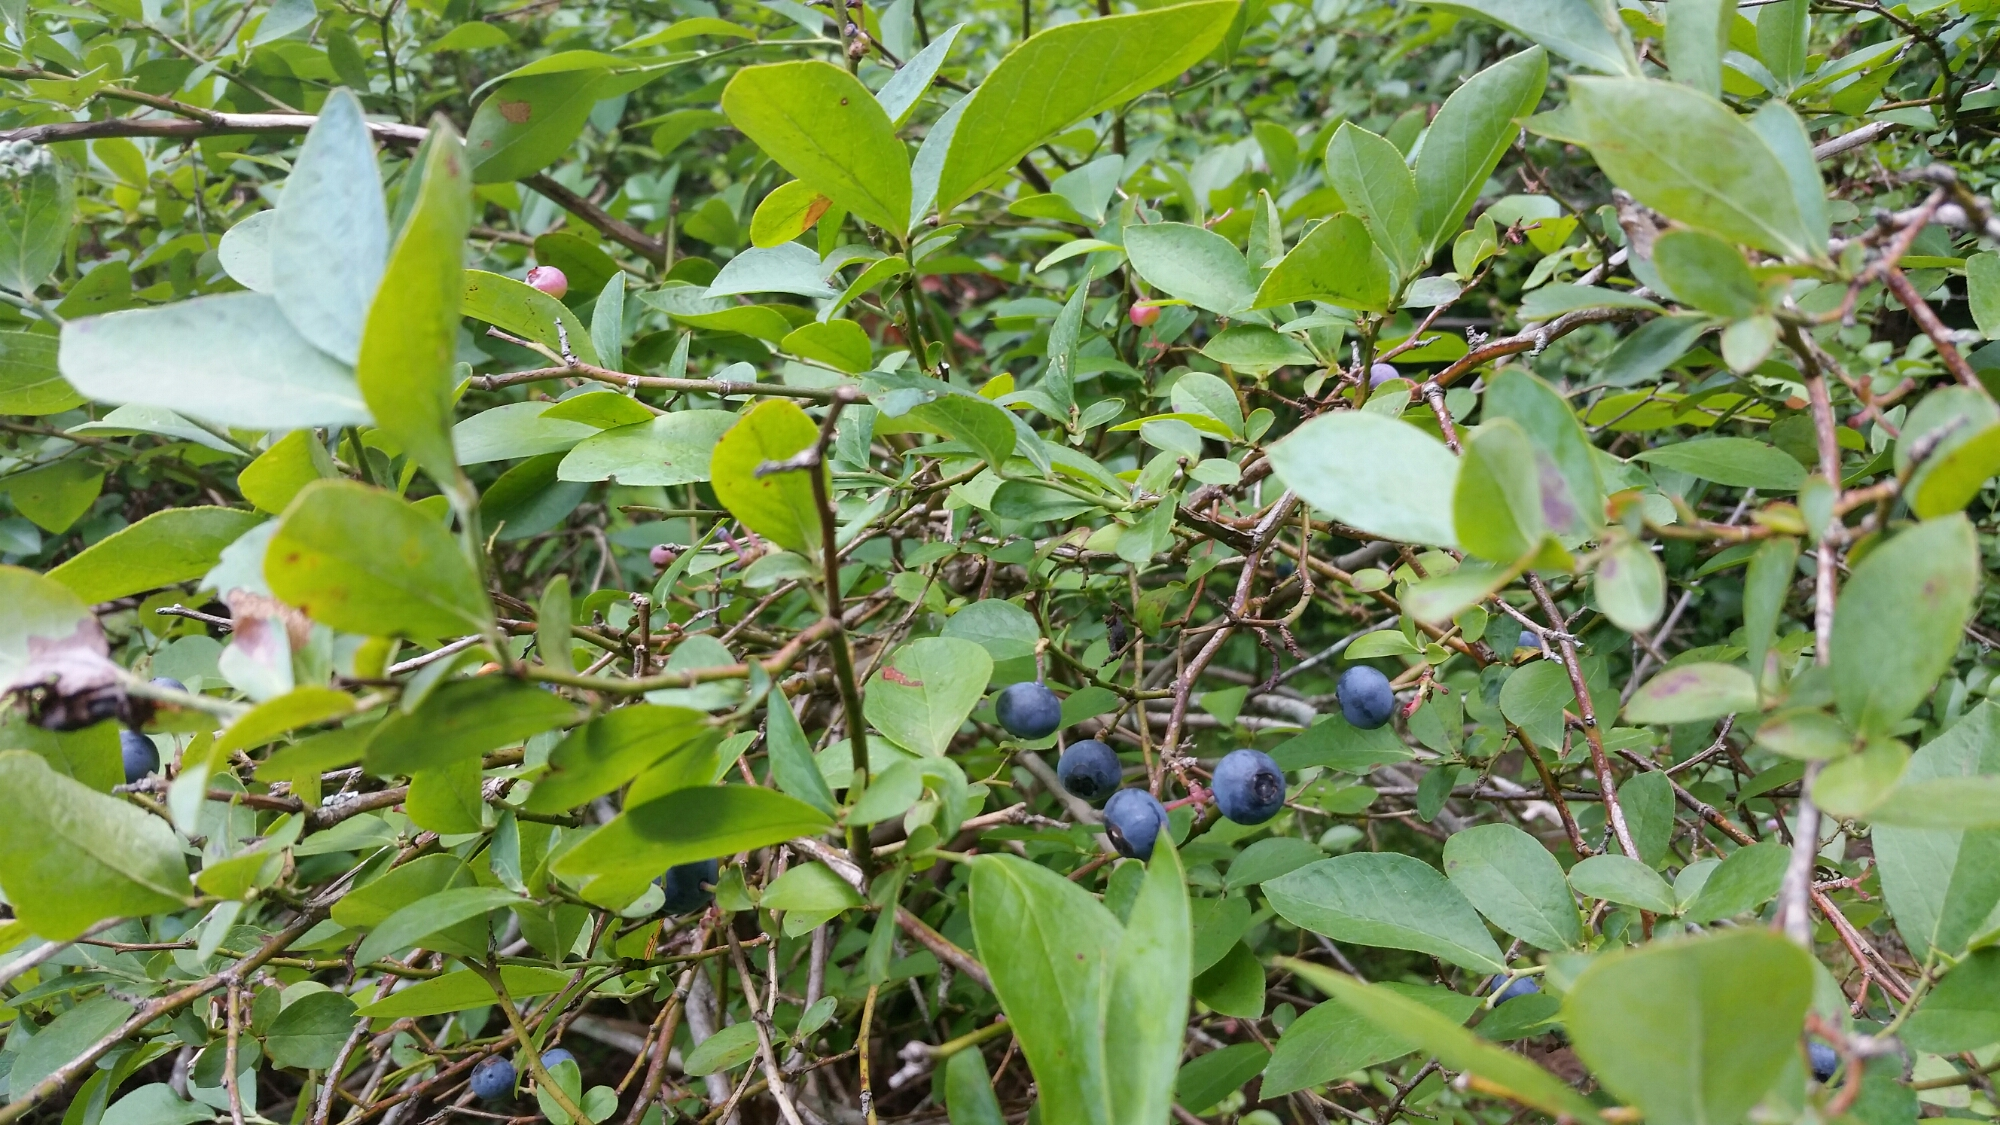 Blueberry picking!